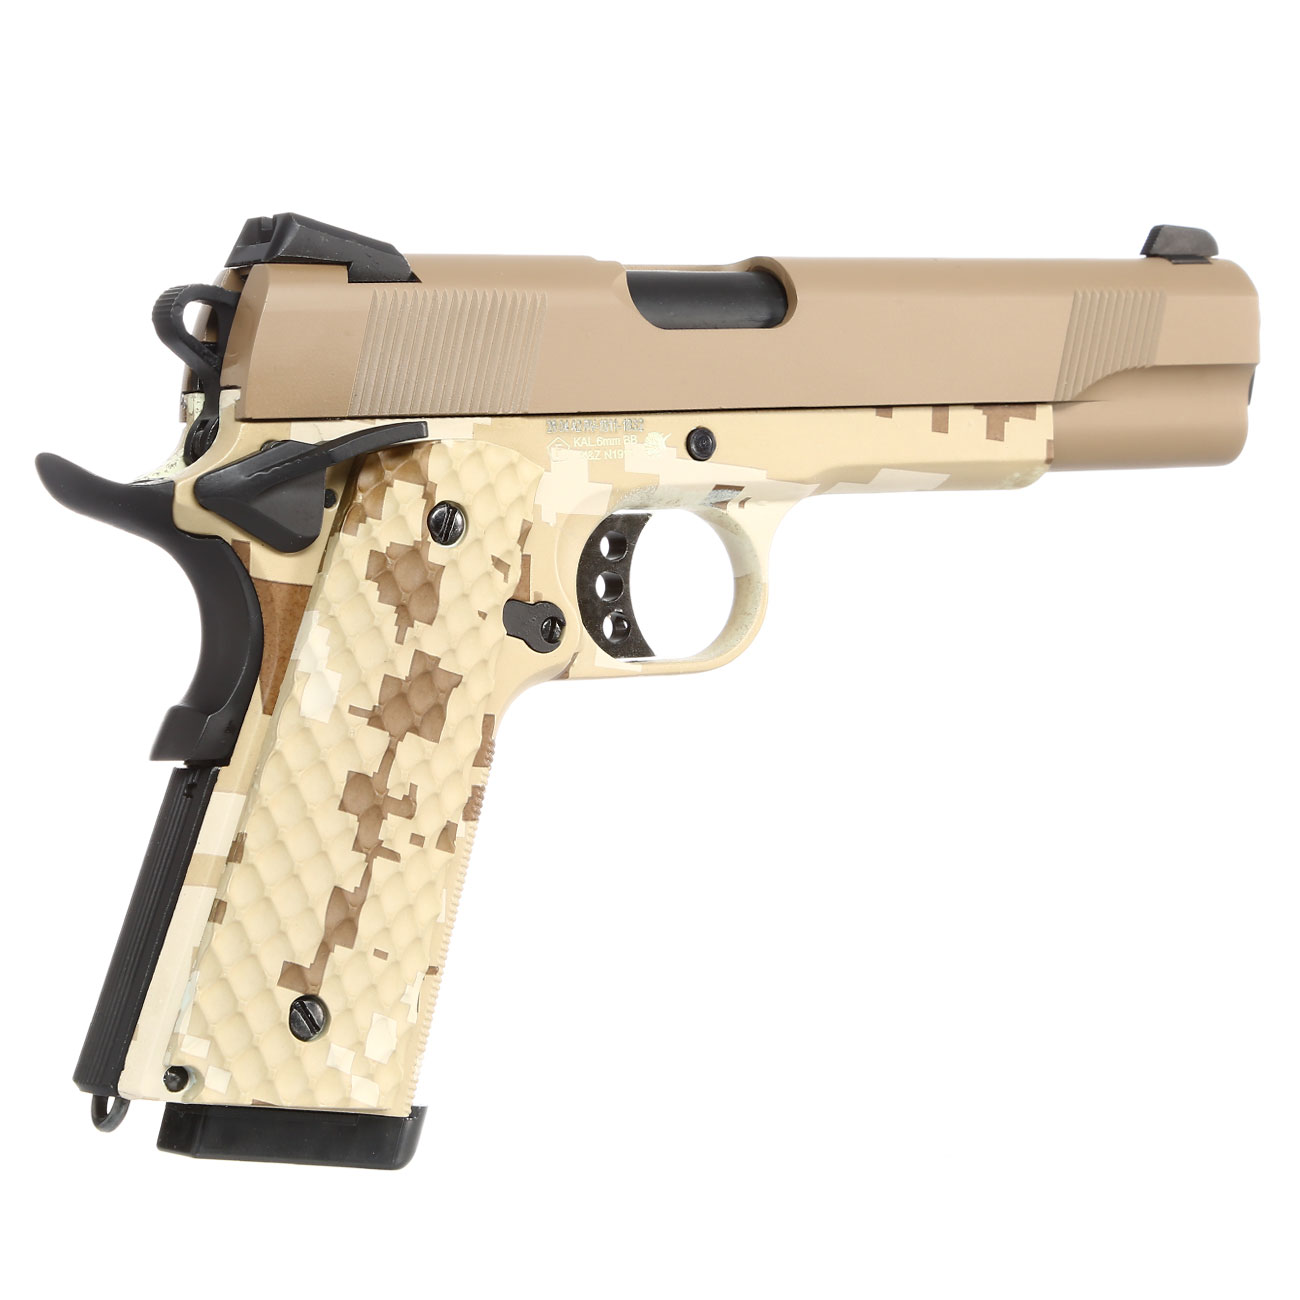 Nuprol Raven M1911 MEU Vollmetall GBB 6mm BB Tan / Digital Desert 4